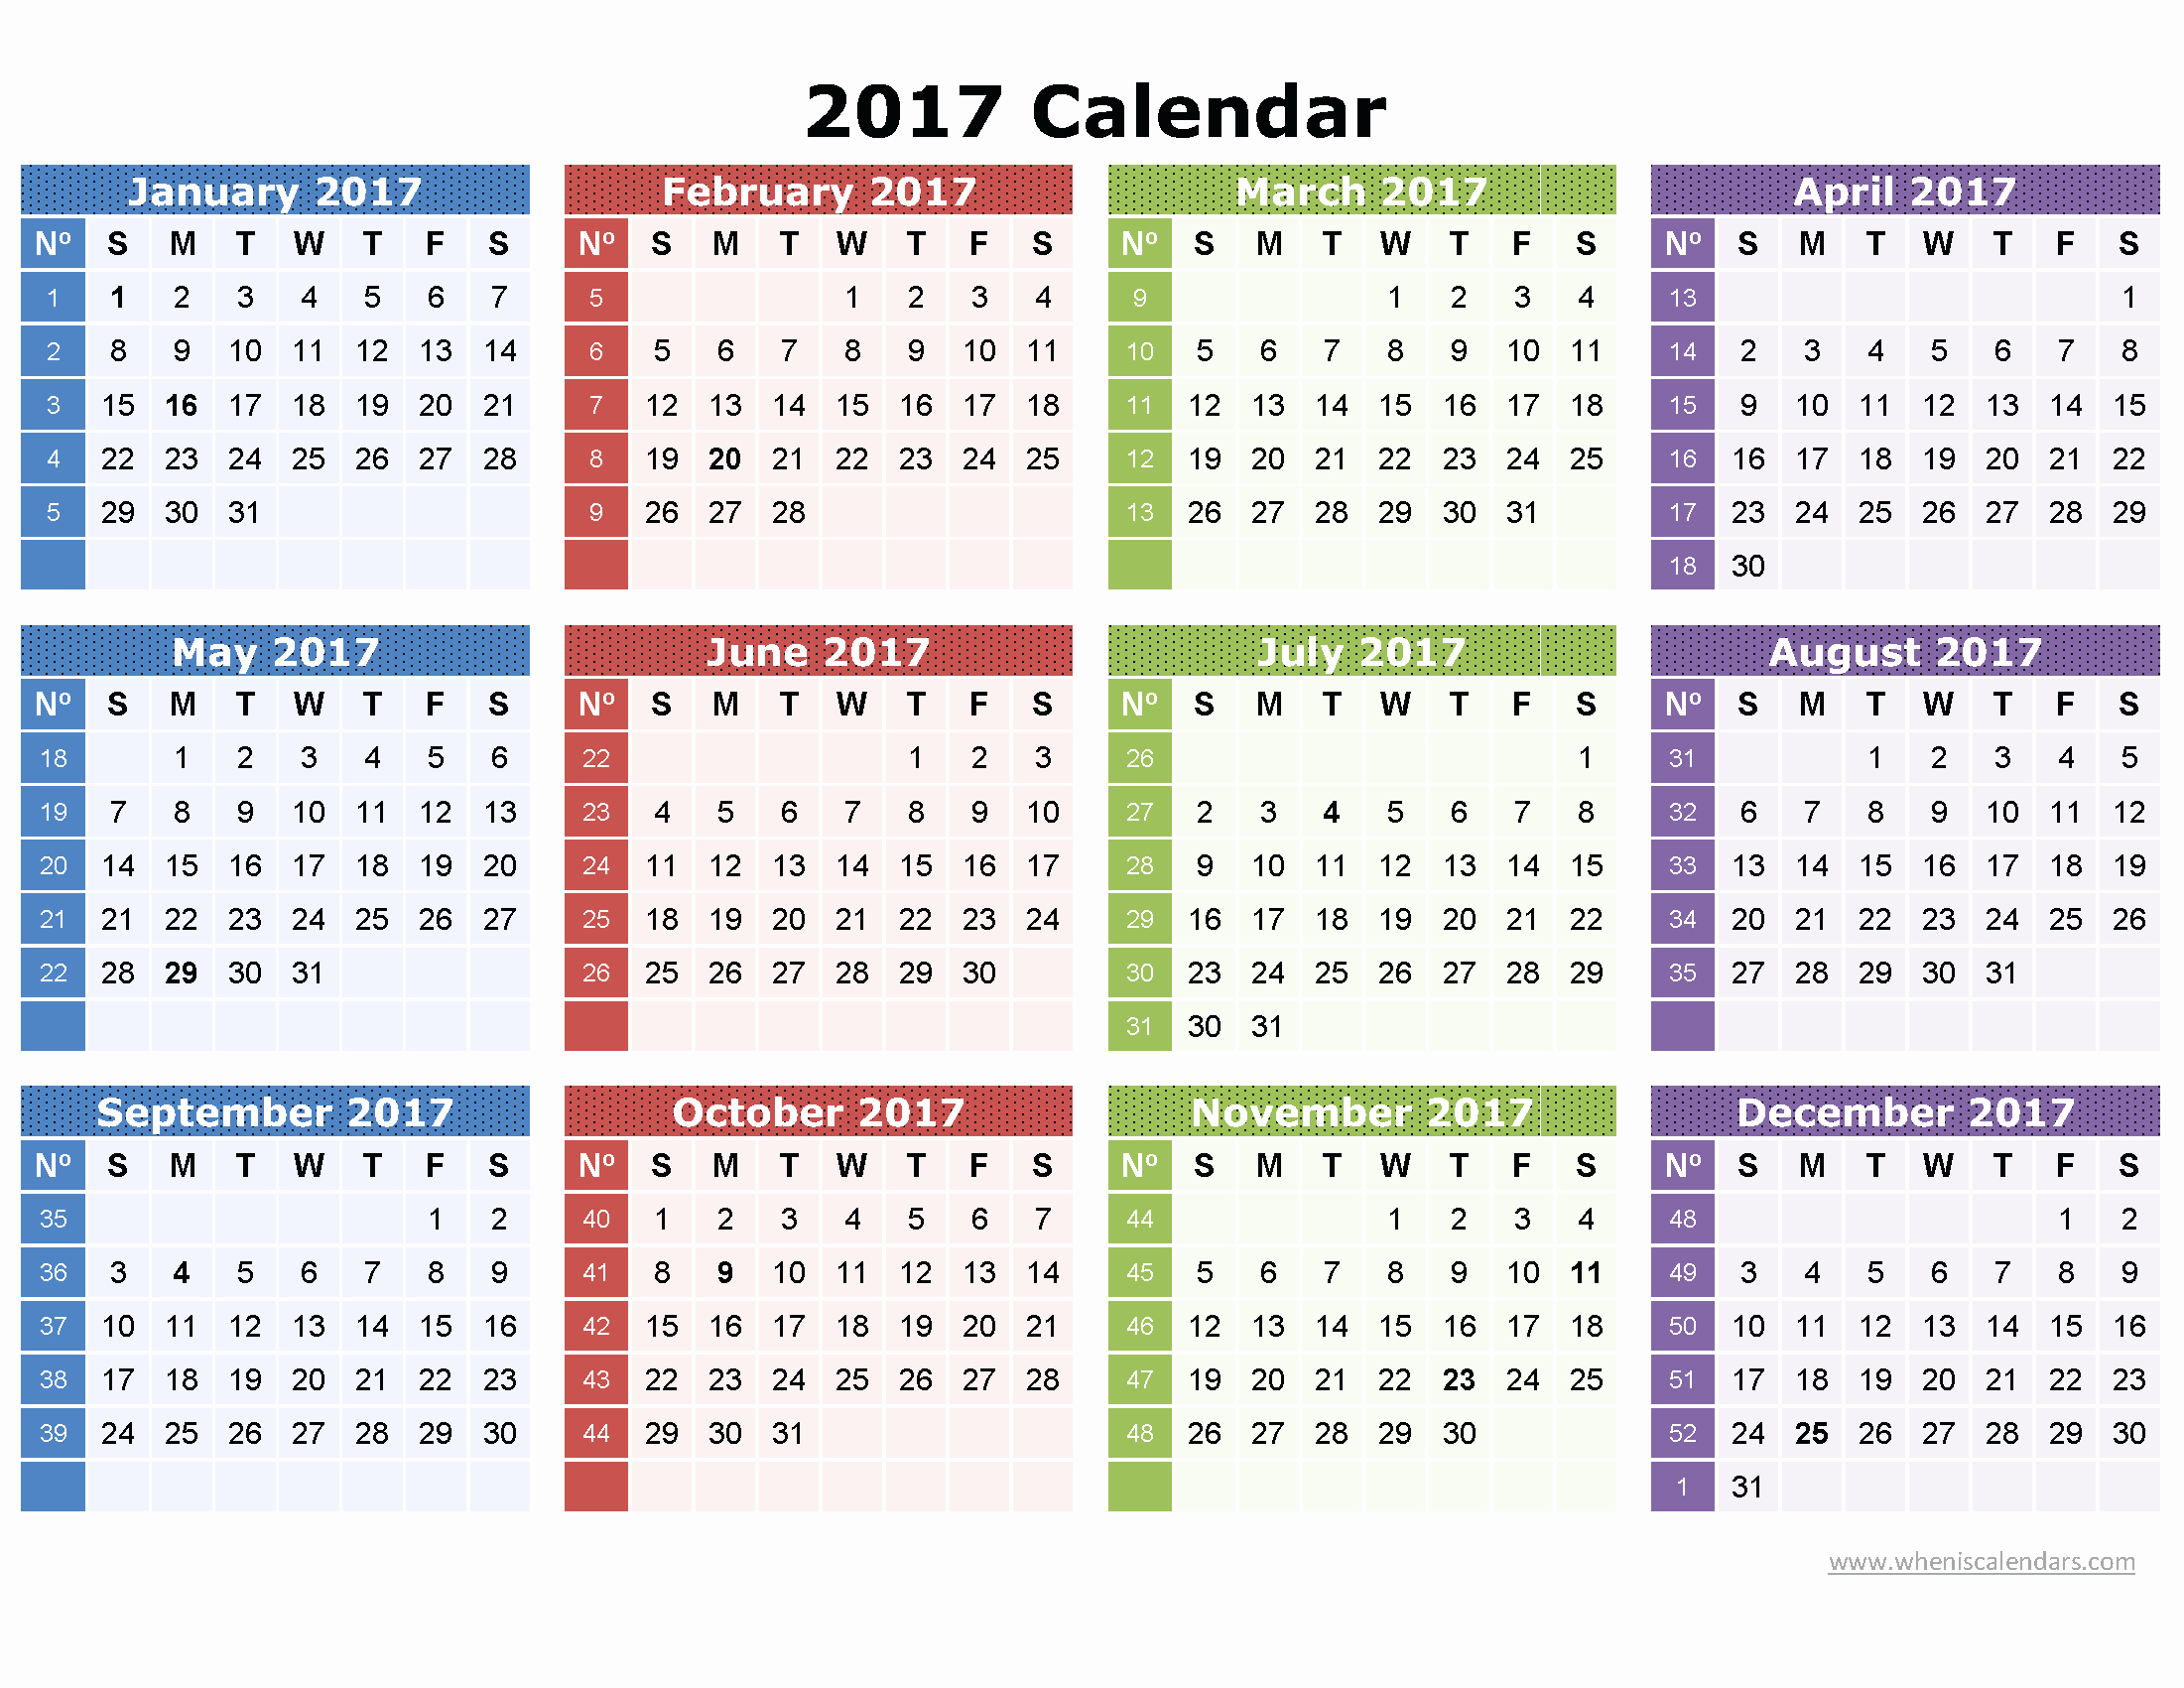 Free Printable Annual Calendar 2017 Beautiful 2017 Year Calendar Wallpaper Download Free 2017 Calendar